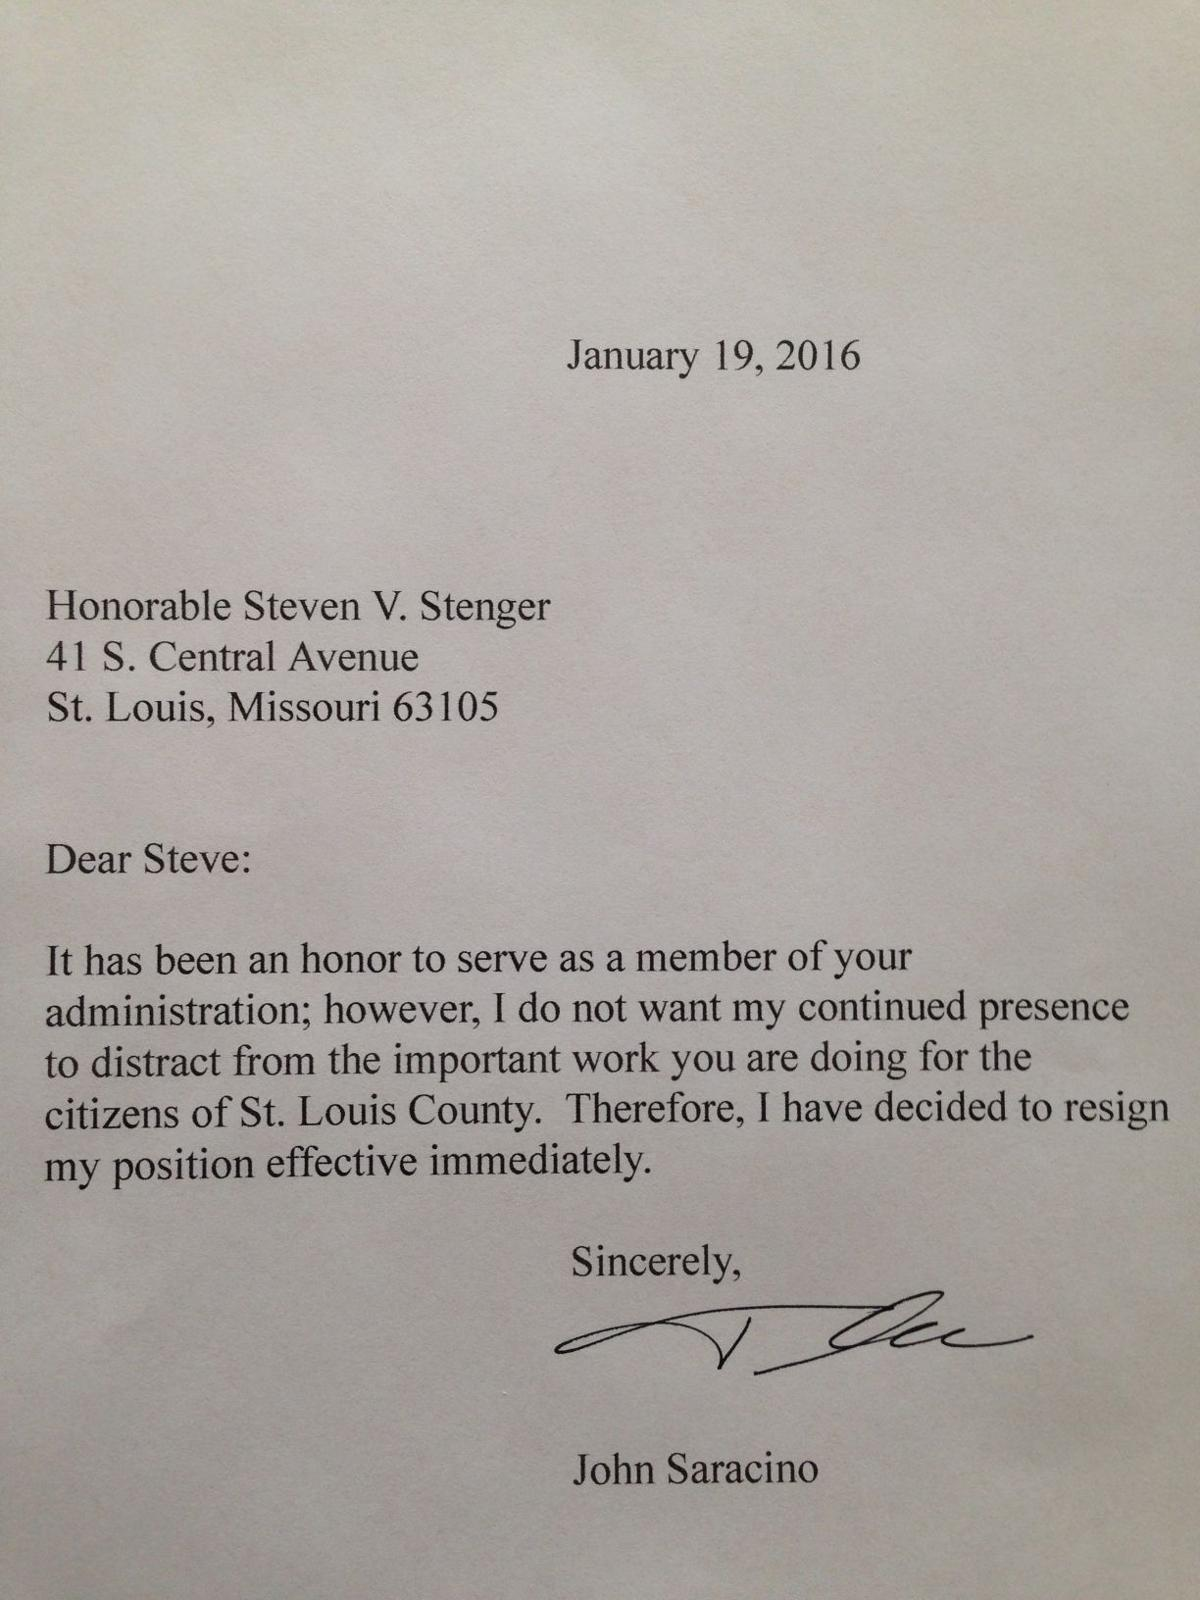 St louis county official resigns over letters written by stenger saracino resignation letter aljukfo Images